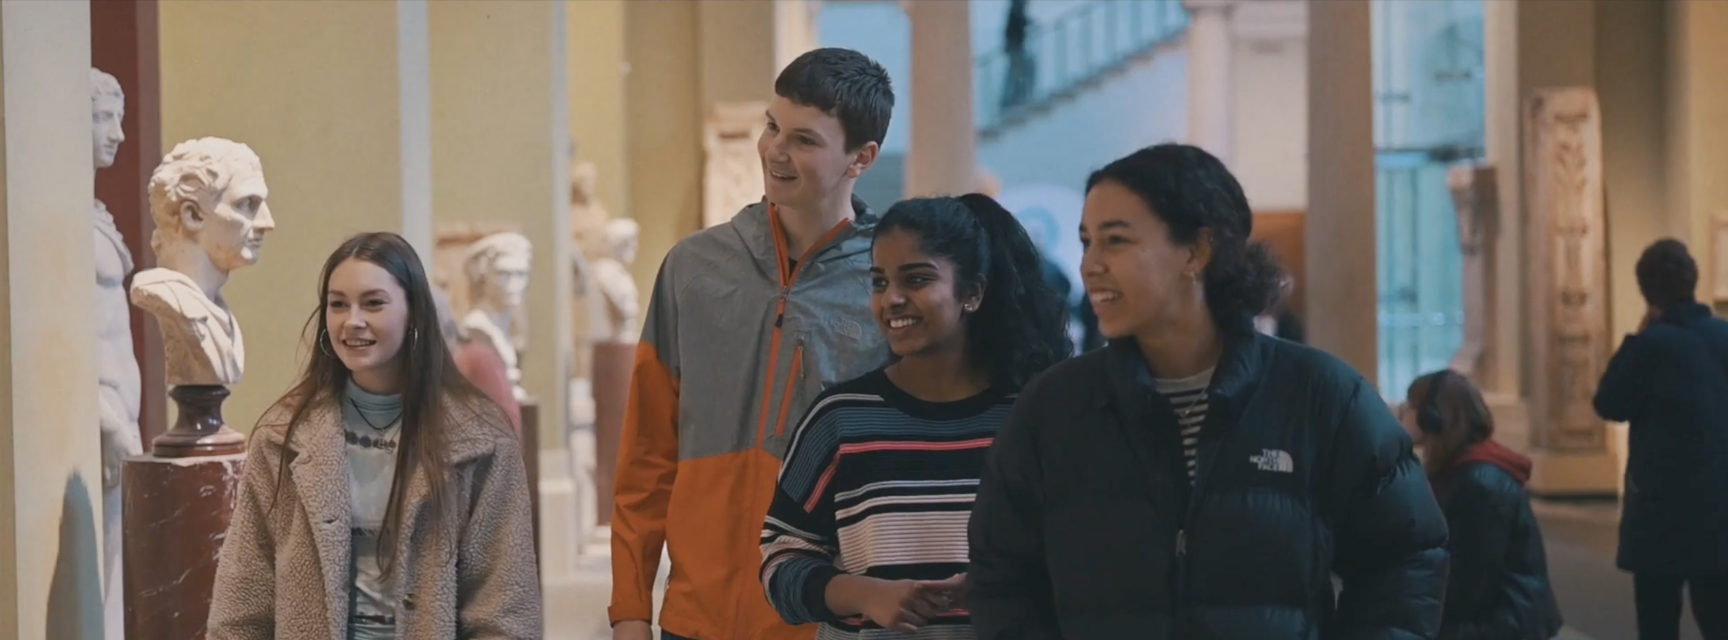 Young People enjoying the museum